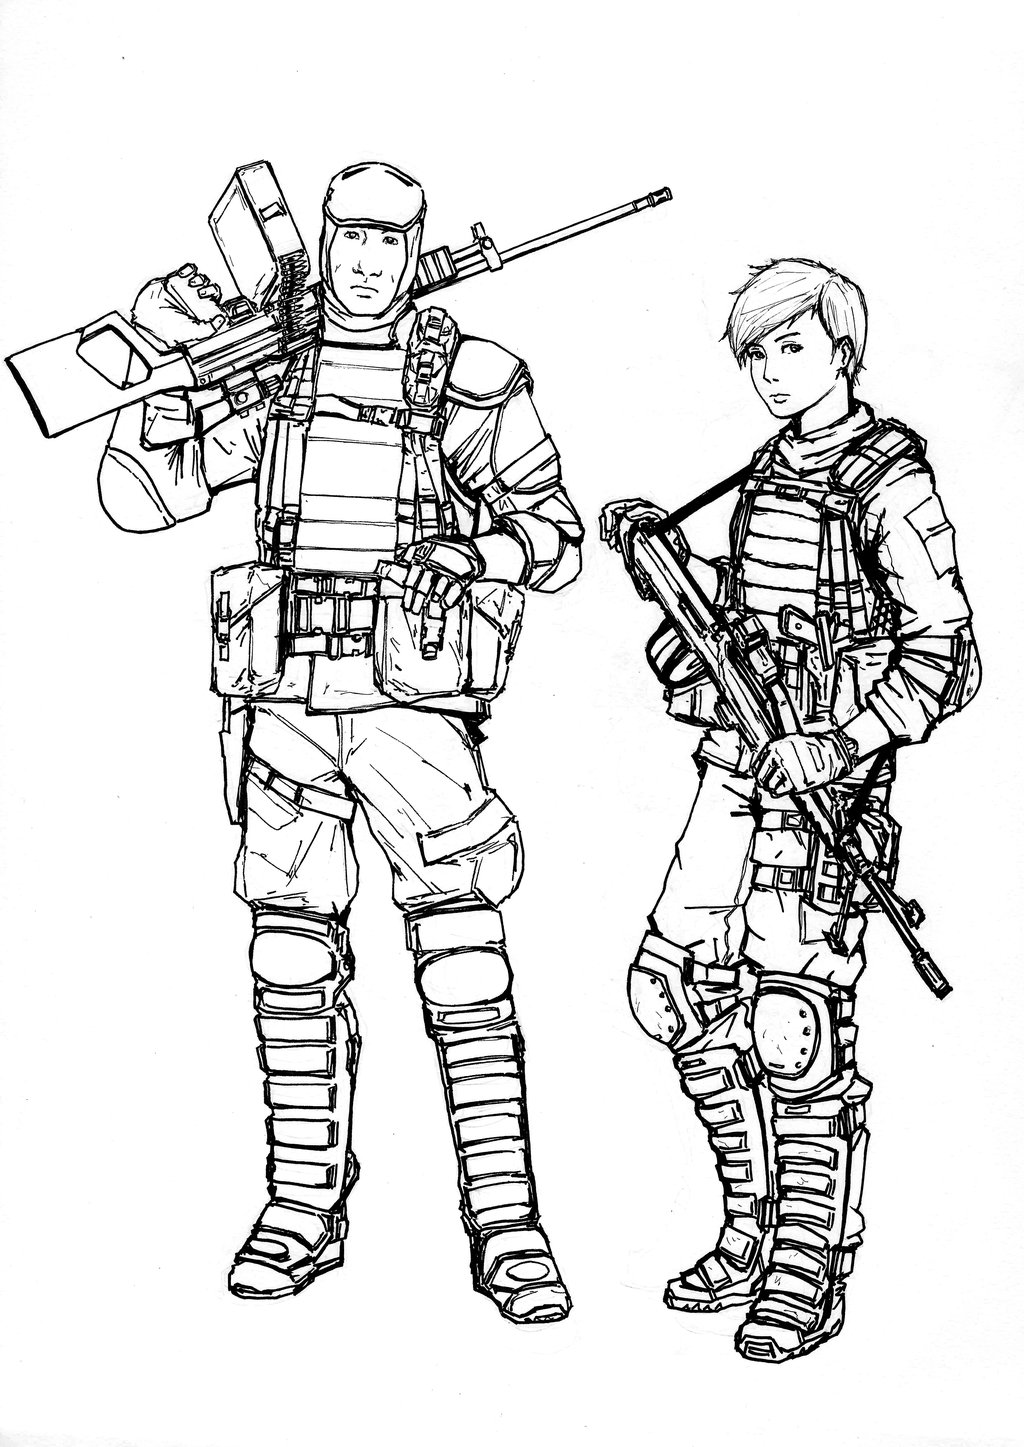 1024x1447 Bf4 Pla Support Class (Line Art) By Thomchen114